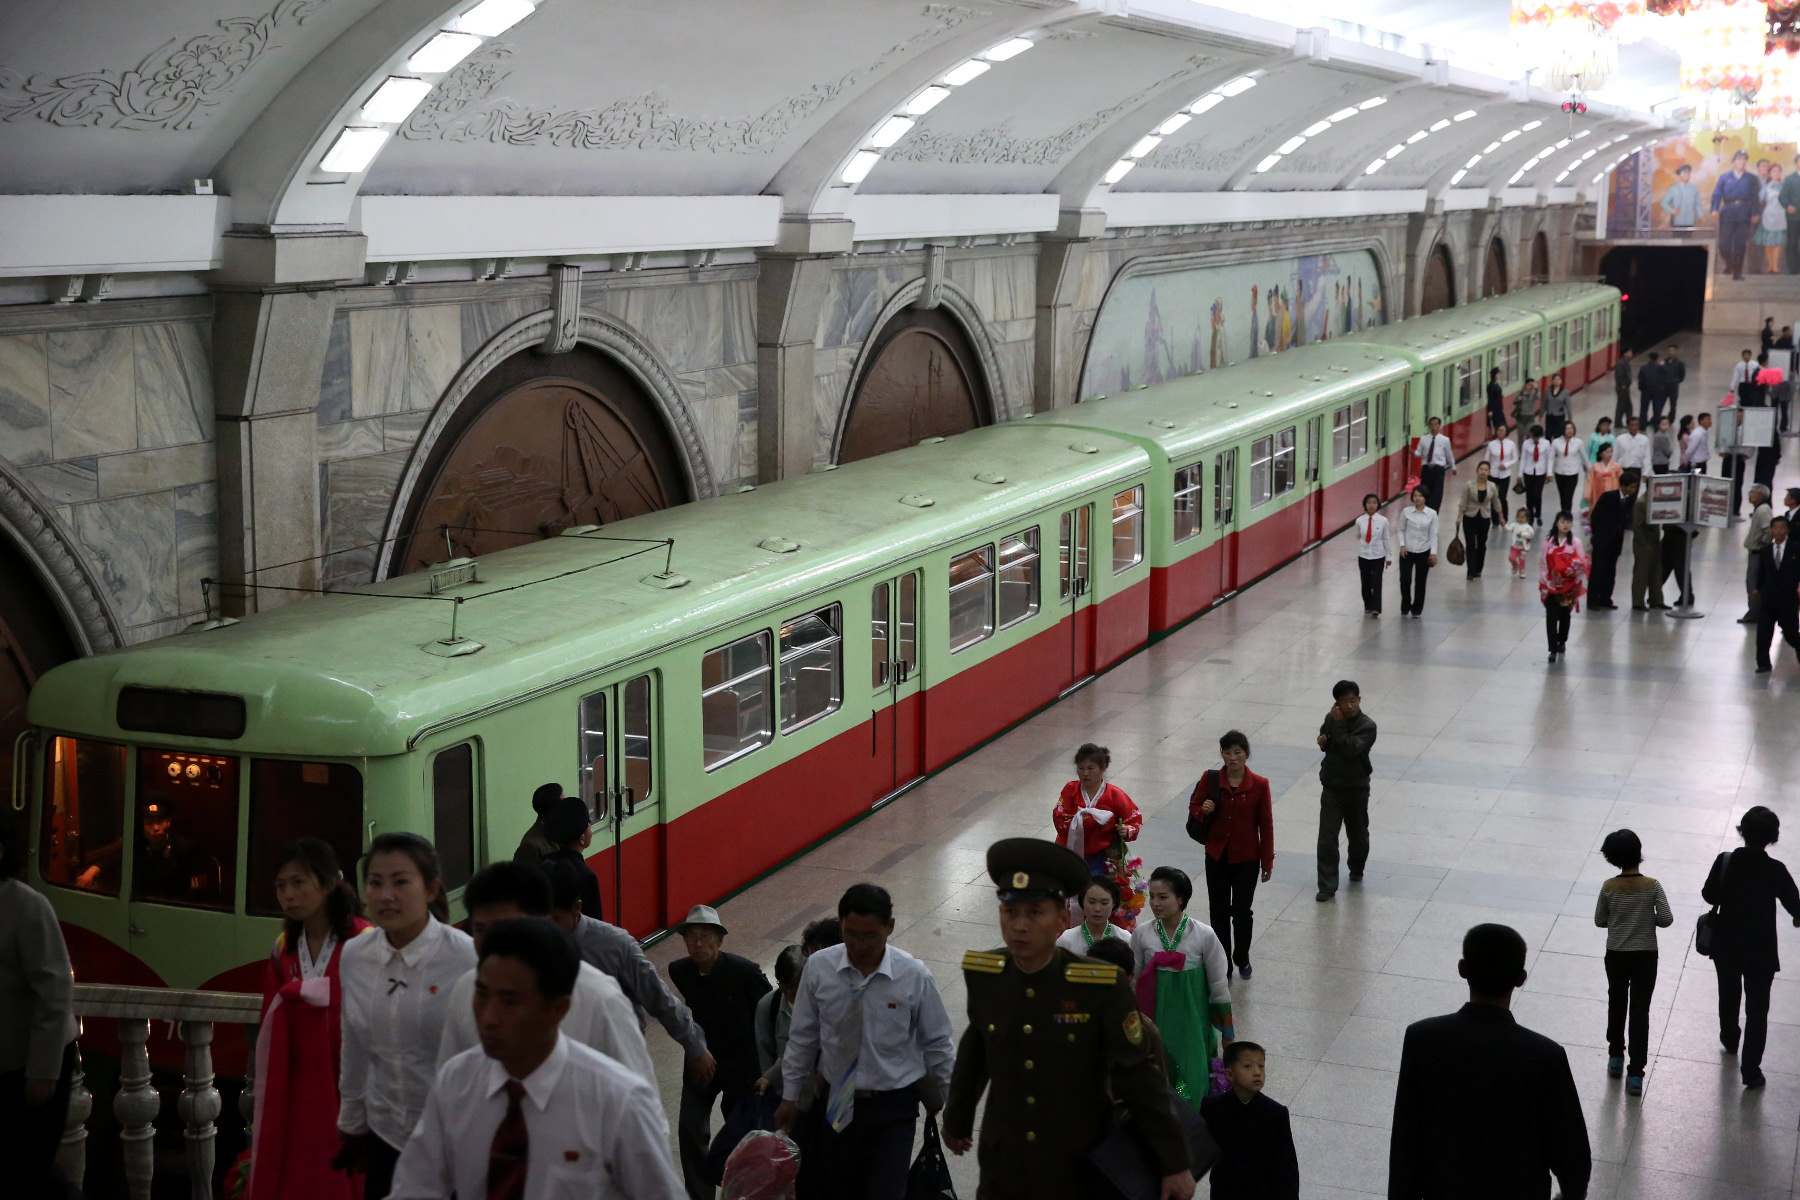 Entrance to the metro station in Pyongyang, North Korea. Visit the DPRK with KTG!